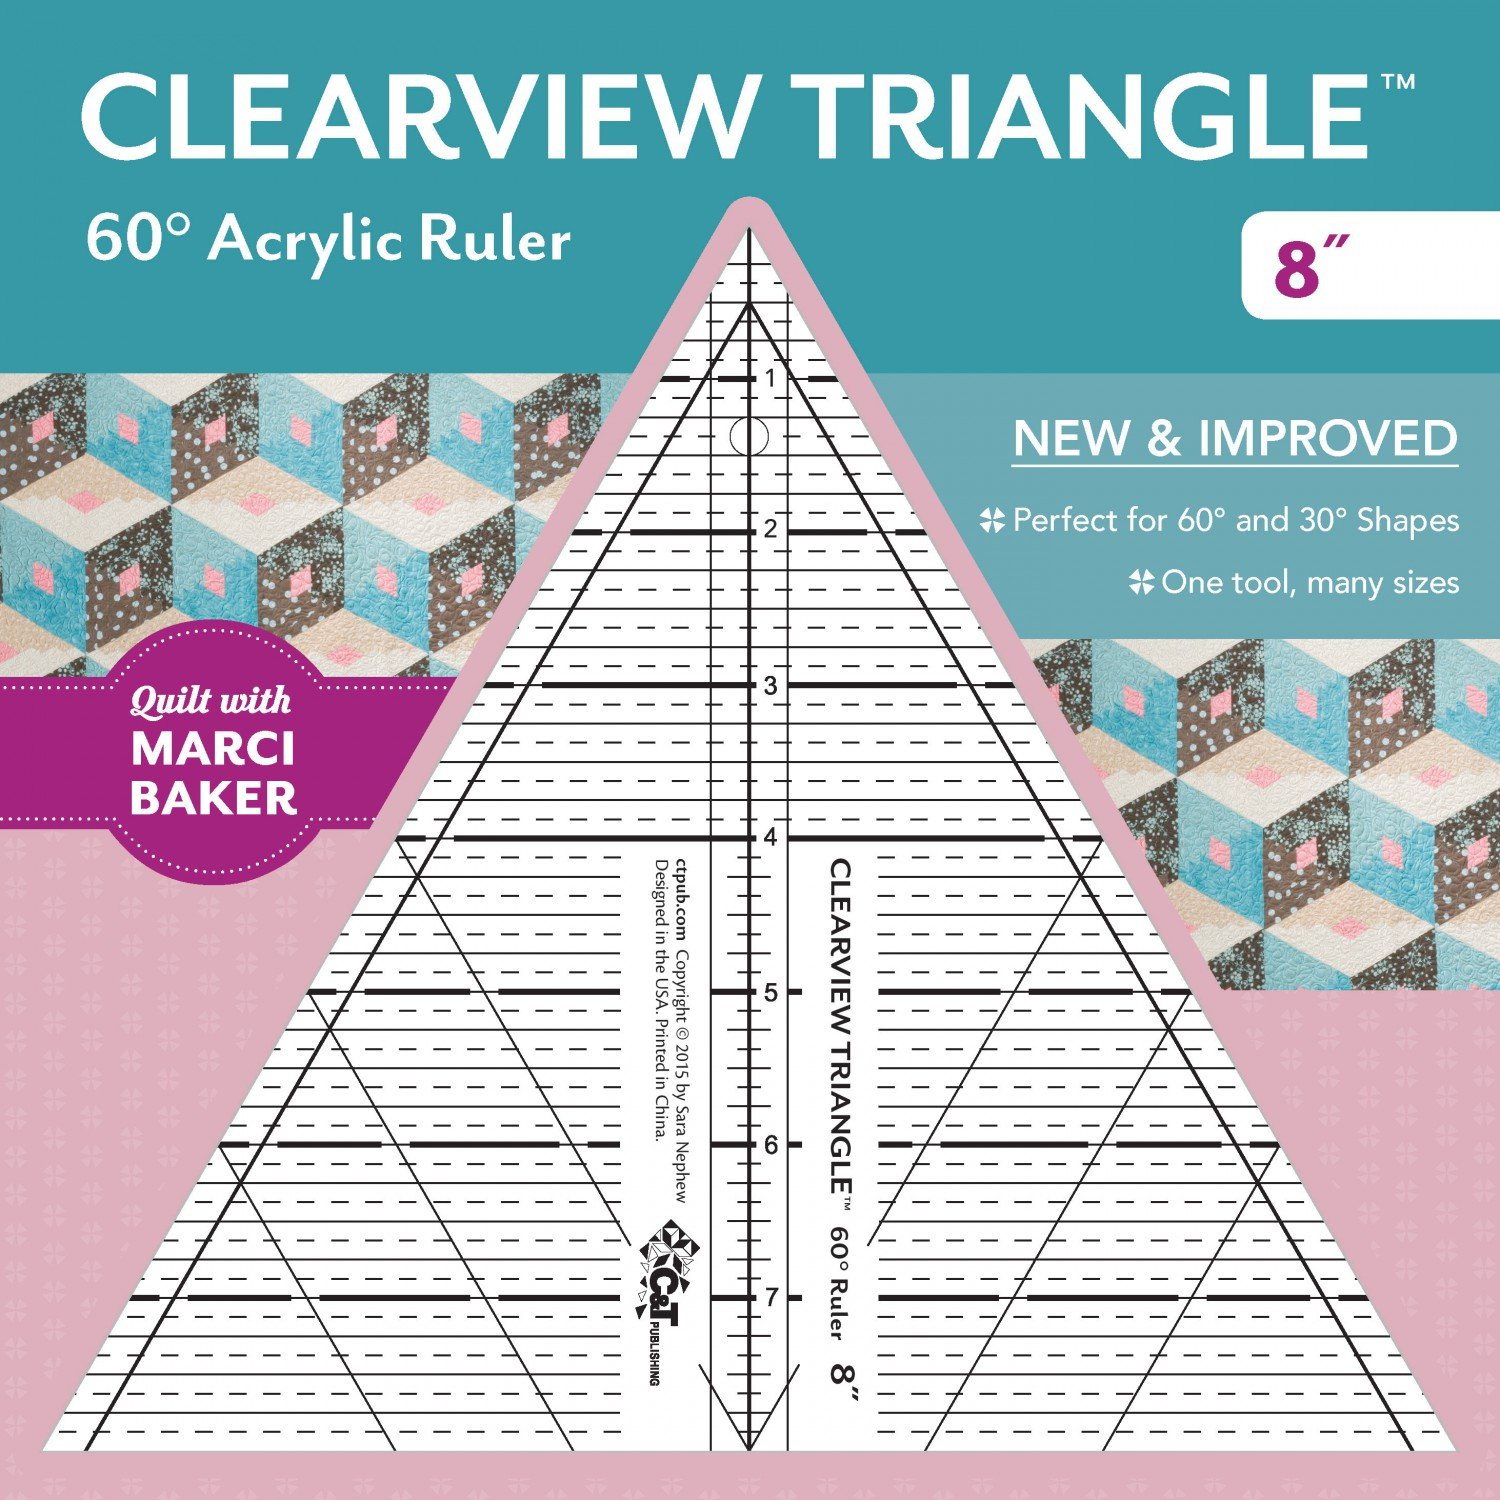 Clearview Triangle 60 degree Acrylic Ruler 8 inch designed by Sara Nephew for Qu...